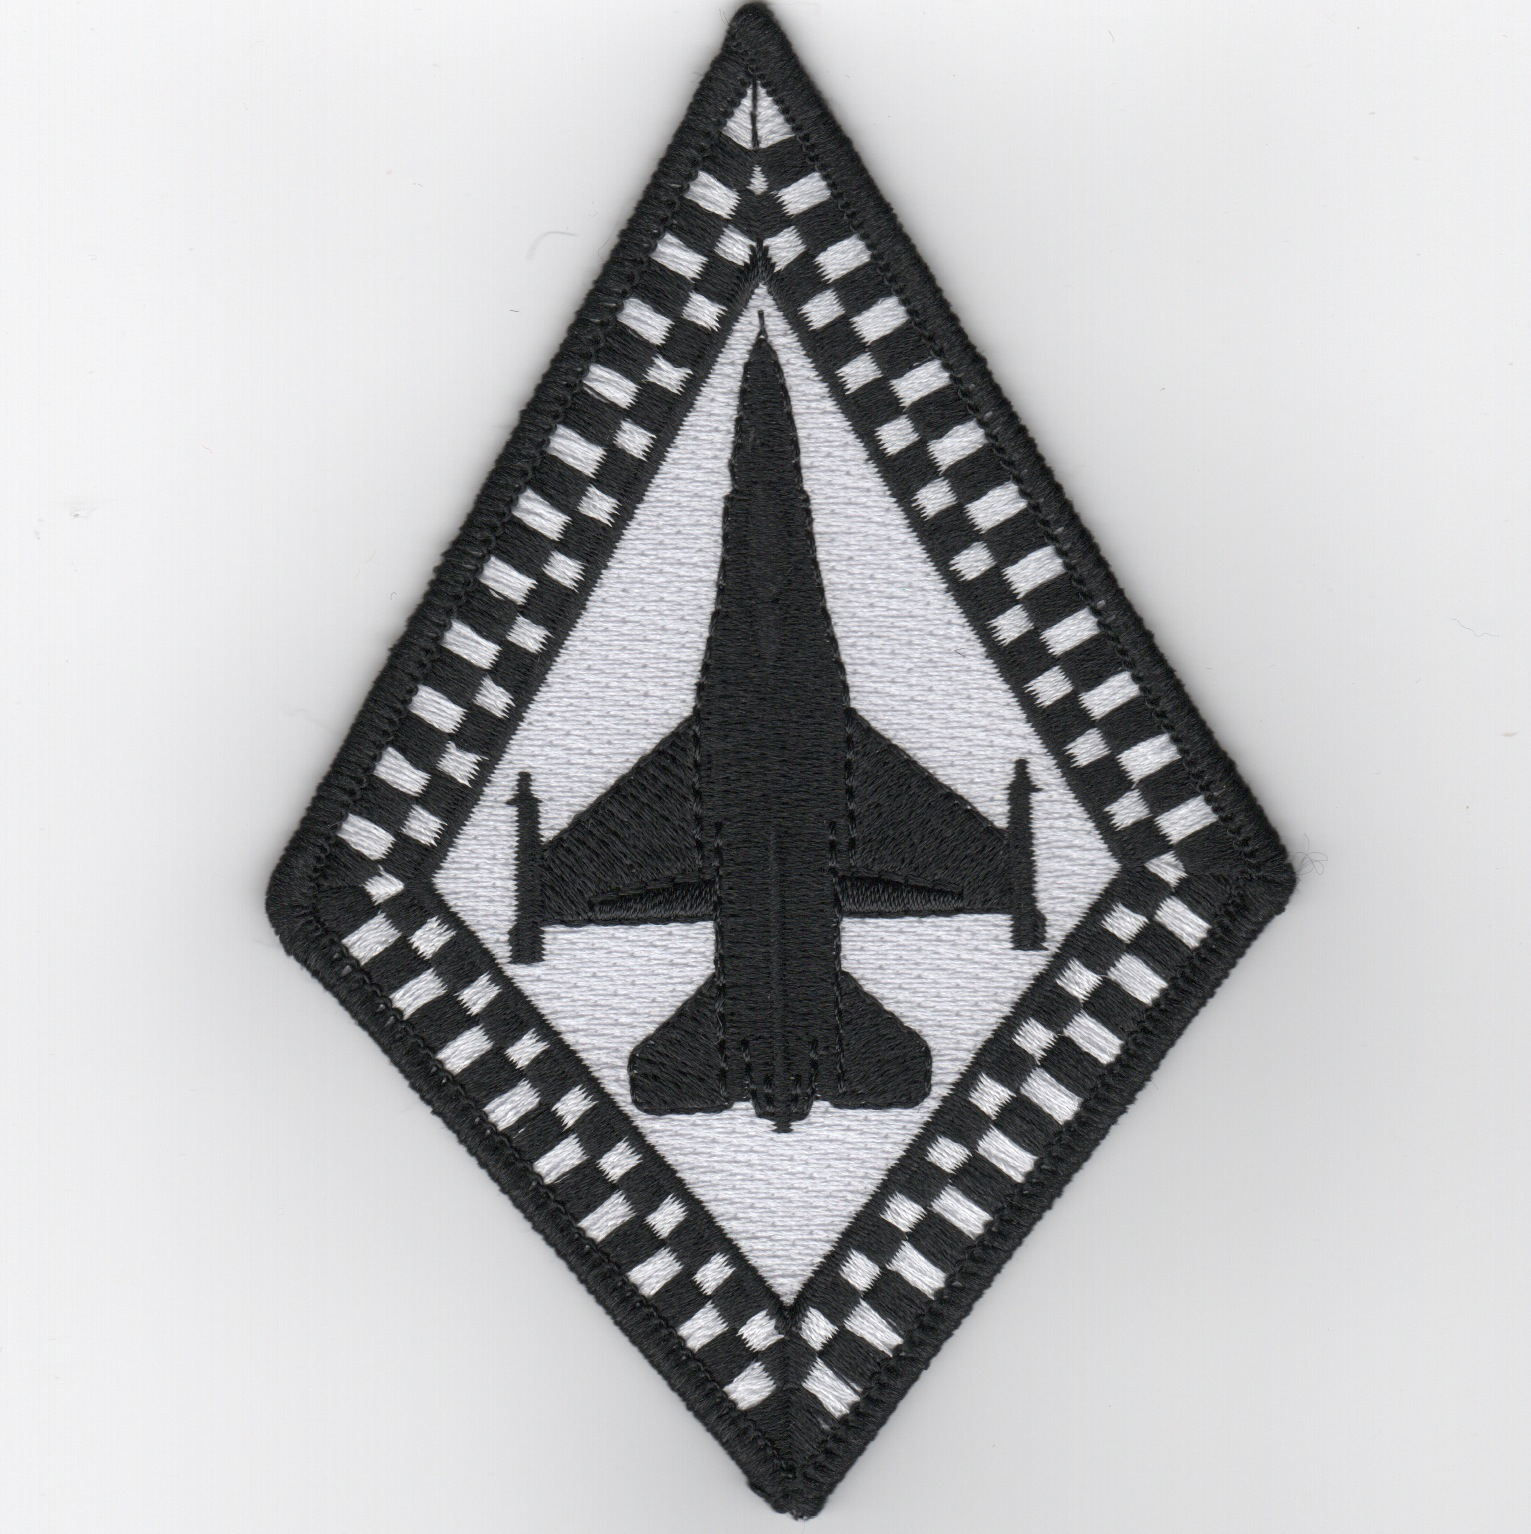 93d FS 'Aircraft' Patch (B&W)